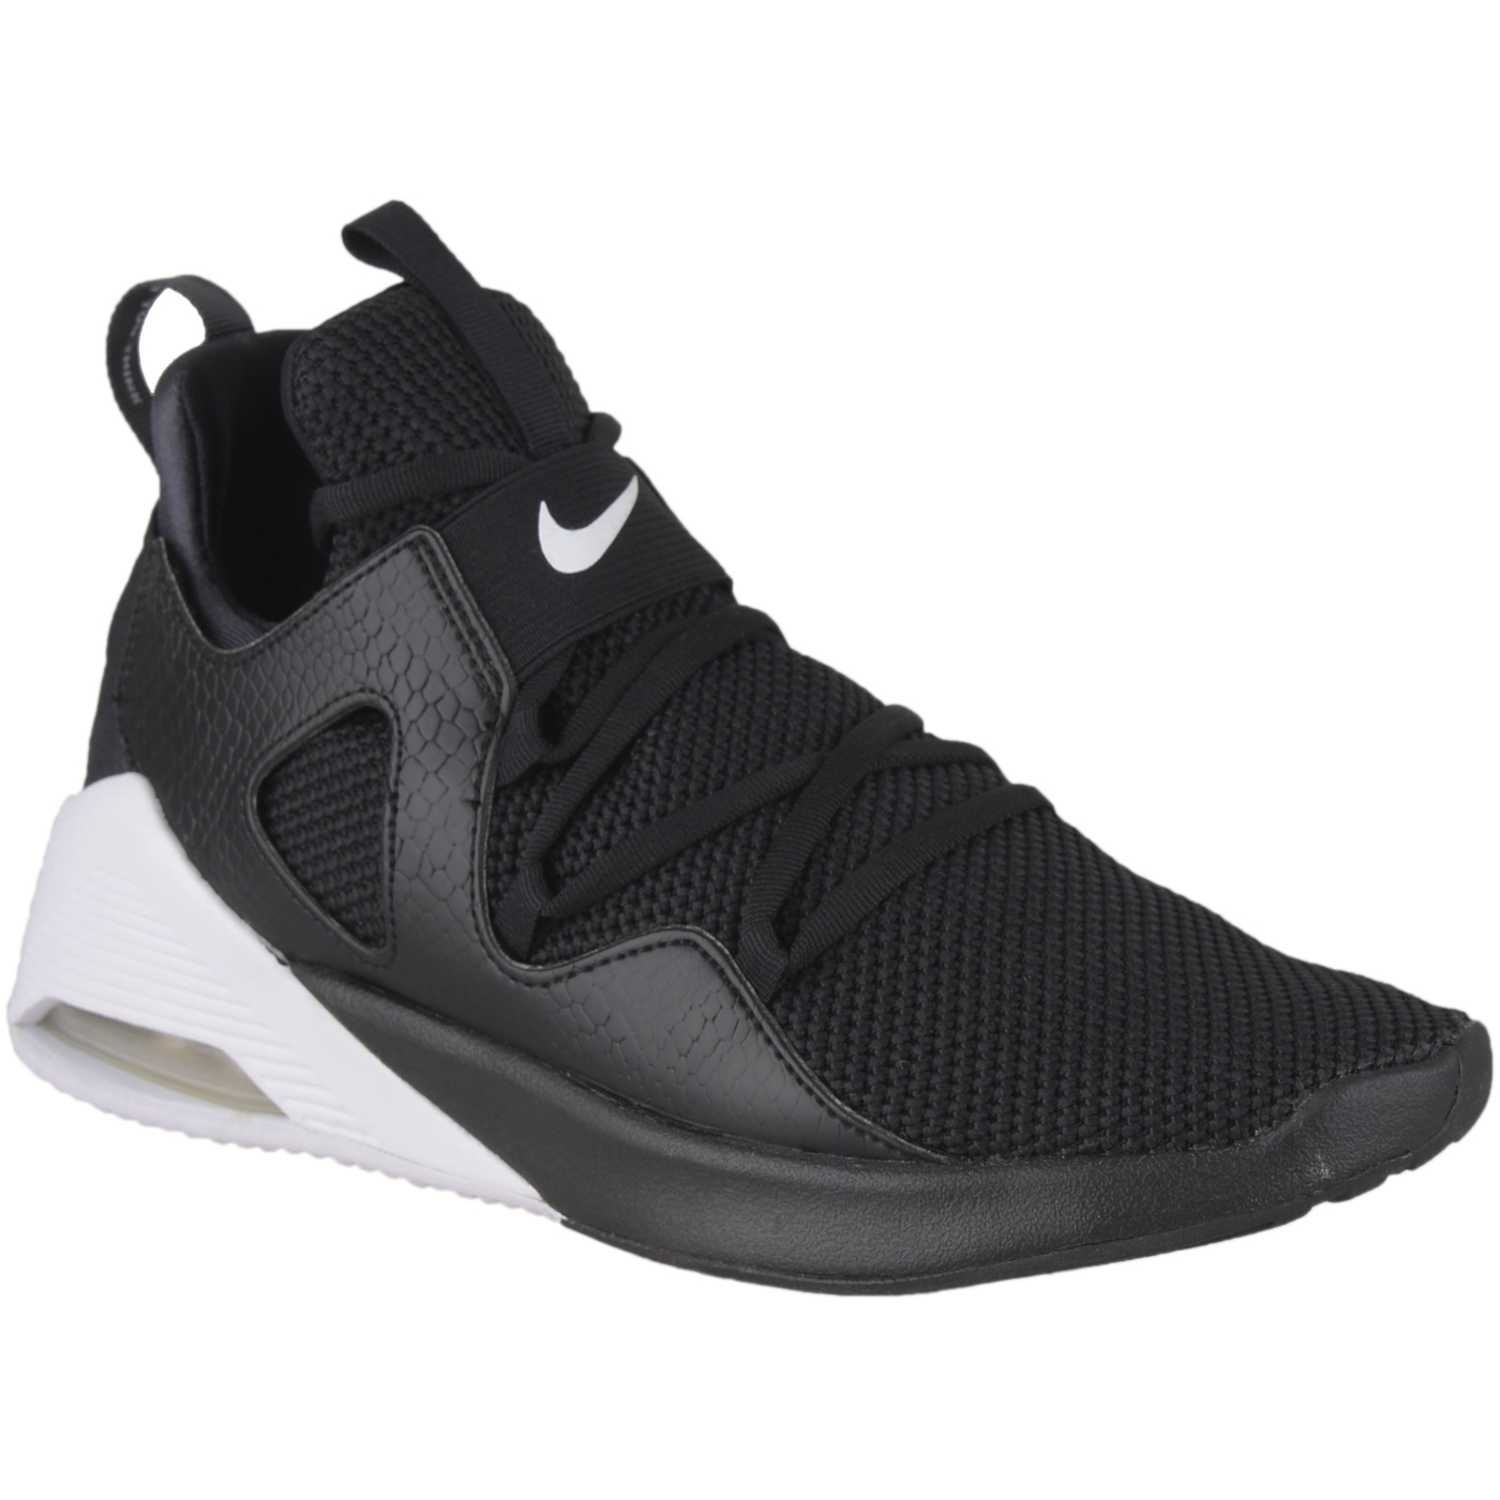 Nike wmns air alluxe Negro / blanco Mujeres